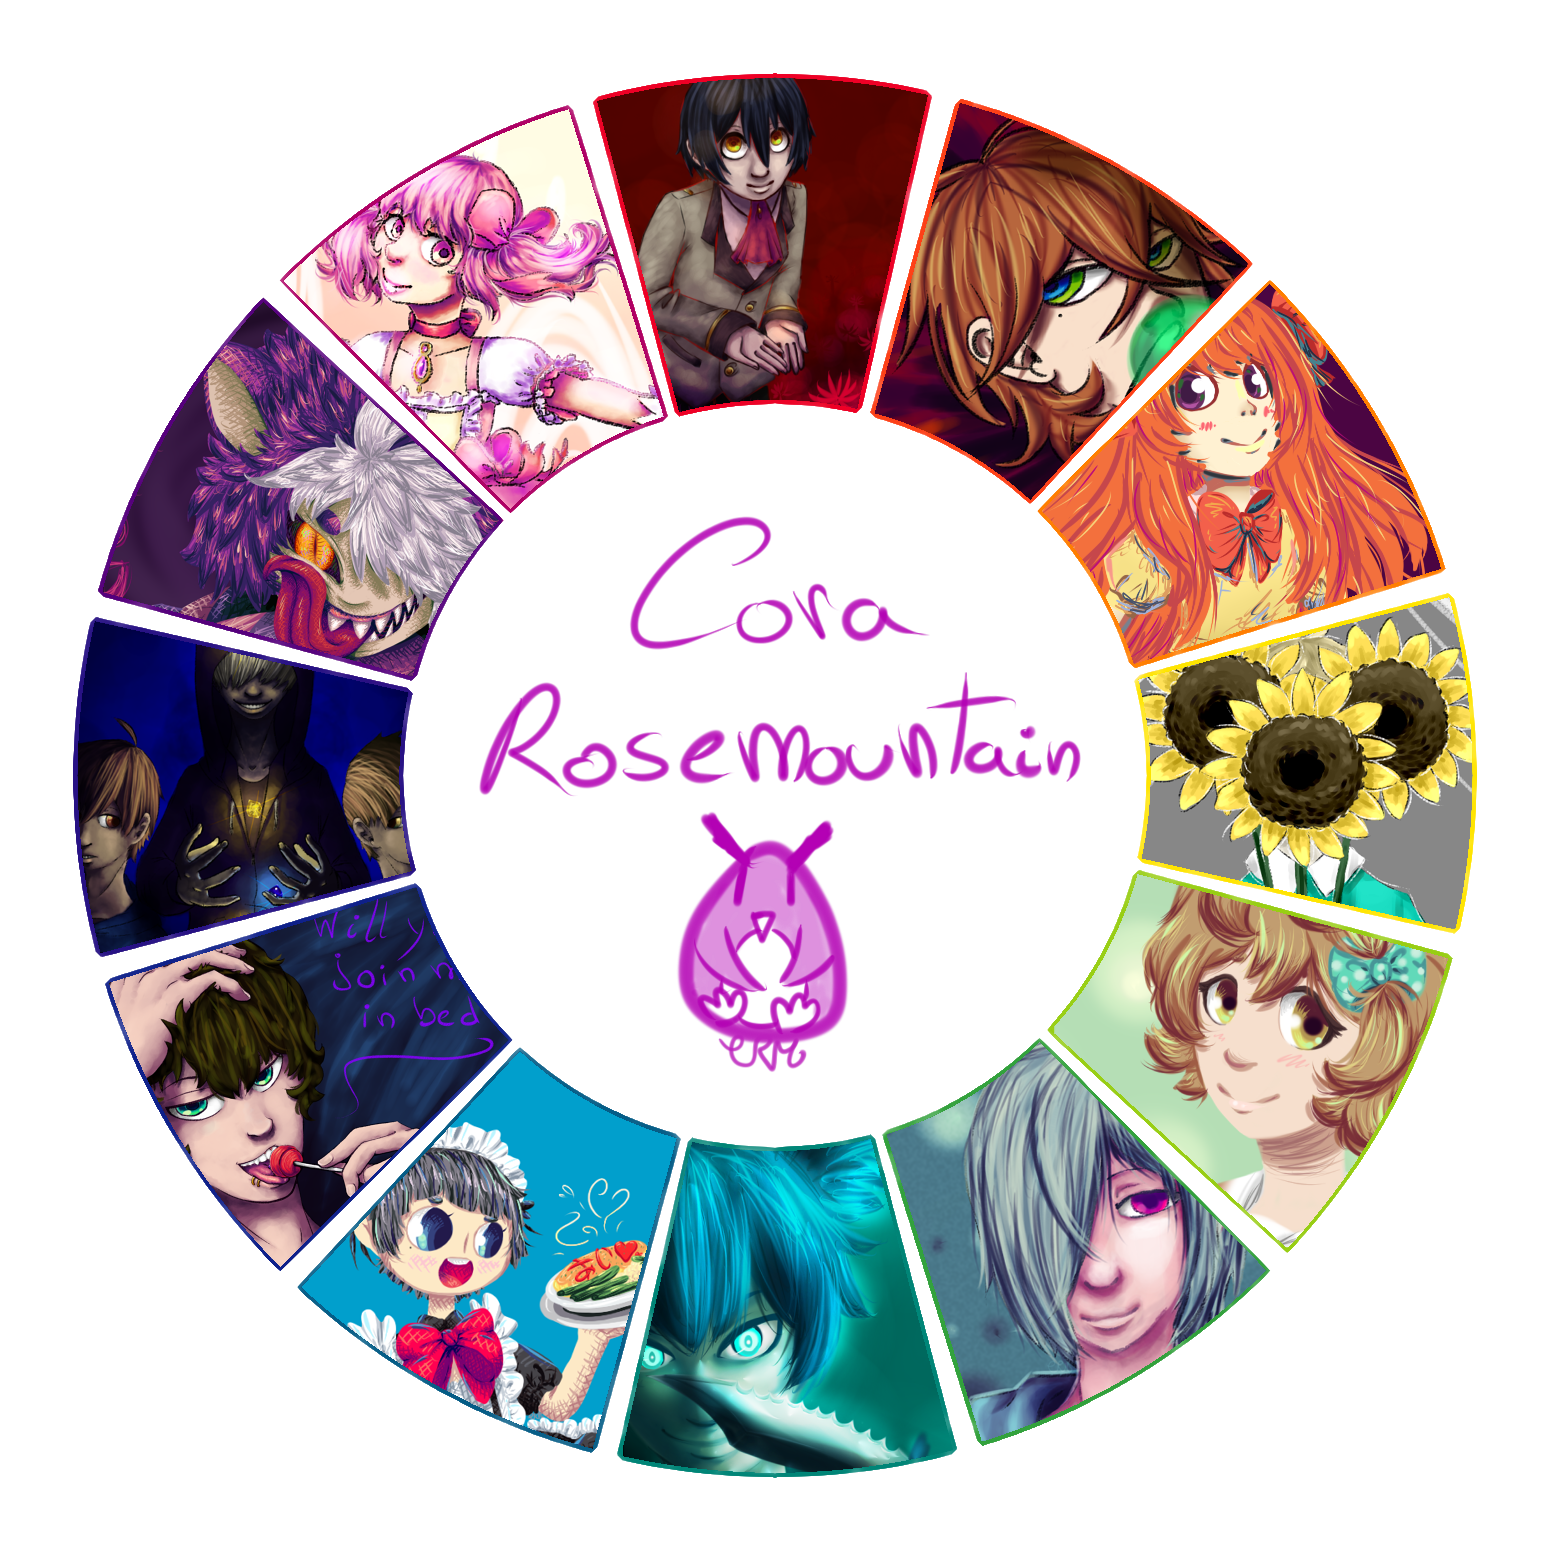 Cora-Rosemountain's Profile Picture